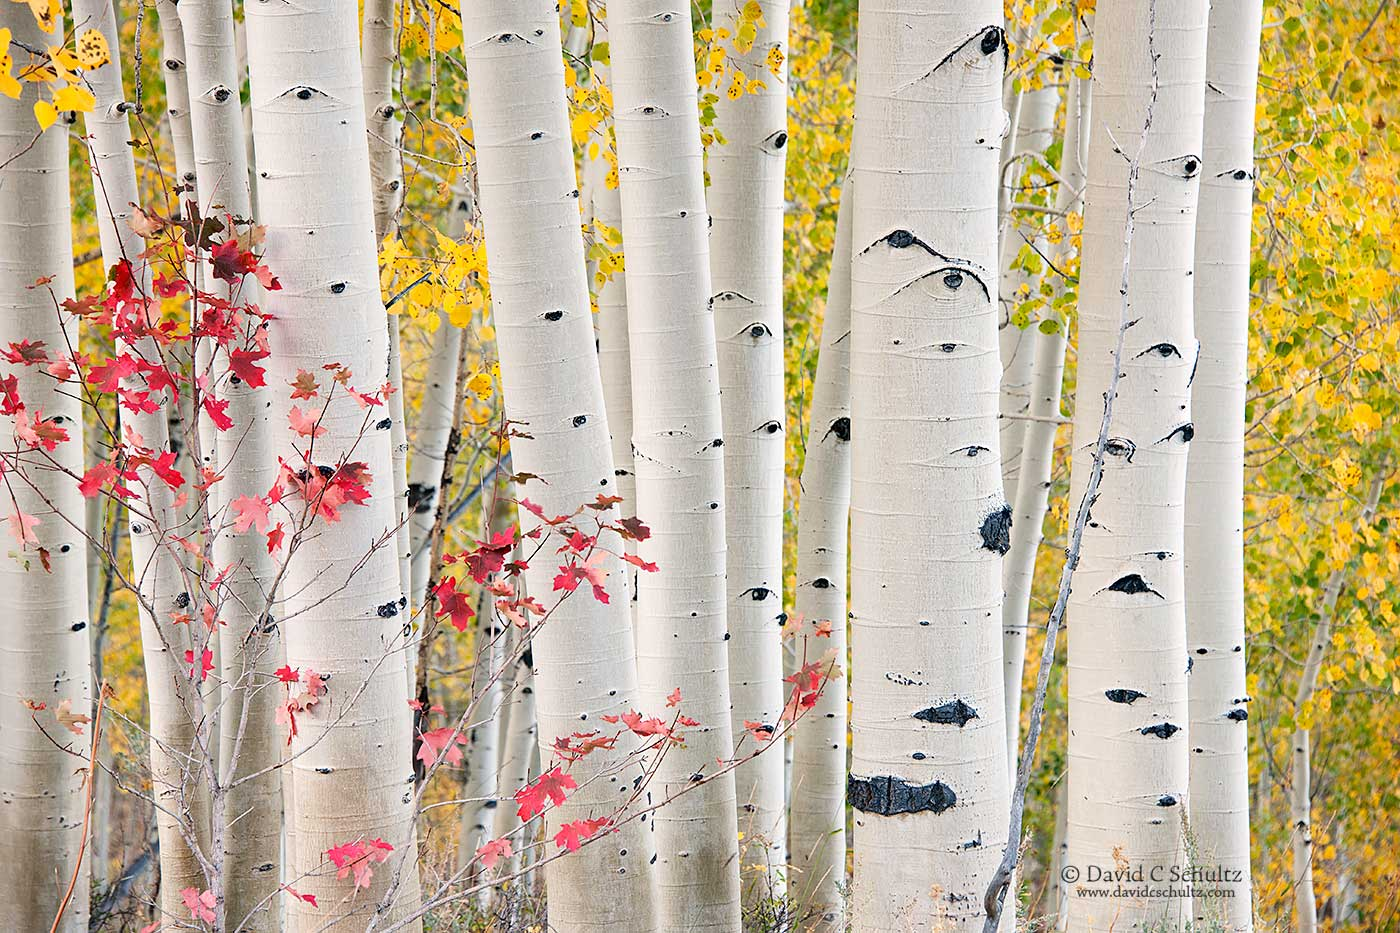 Fall aspen  in the Wasatch Mountains of Utah - Image #3-7456